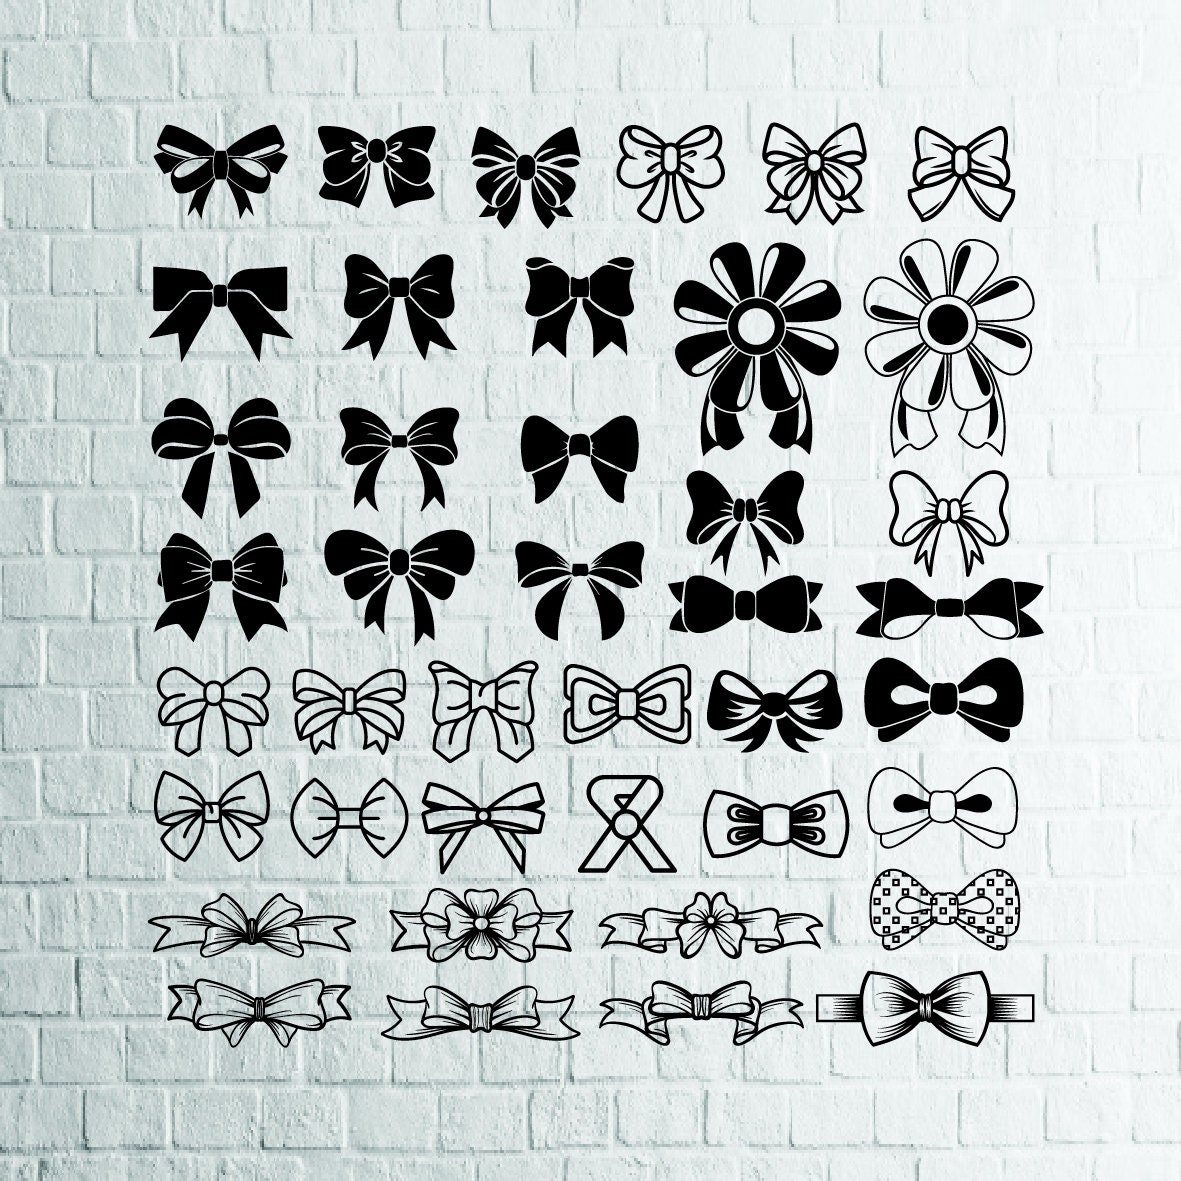 Buy 3 Get 1 Free 41 Bows Svg Bundle Bow Vectortie Svgbow Etsy